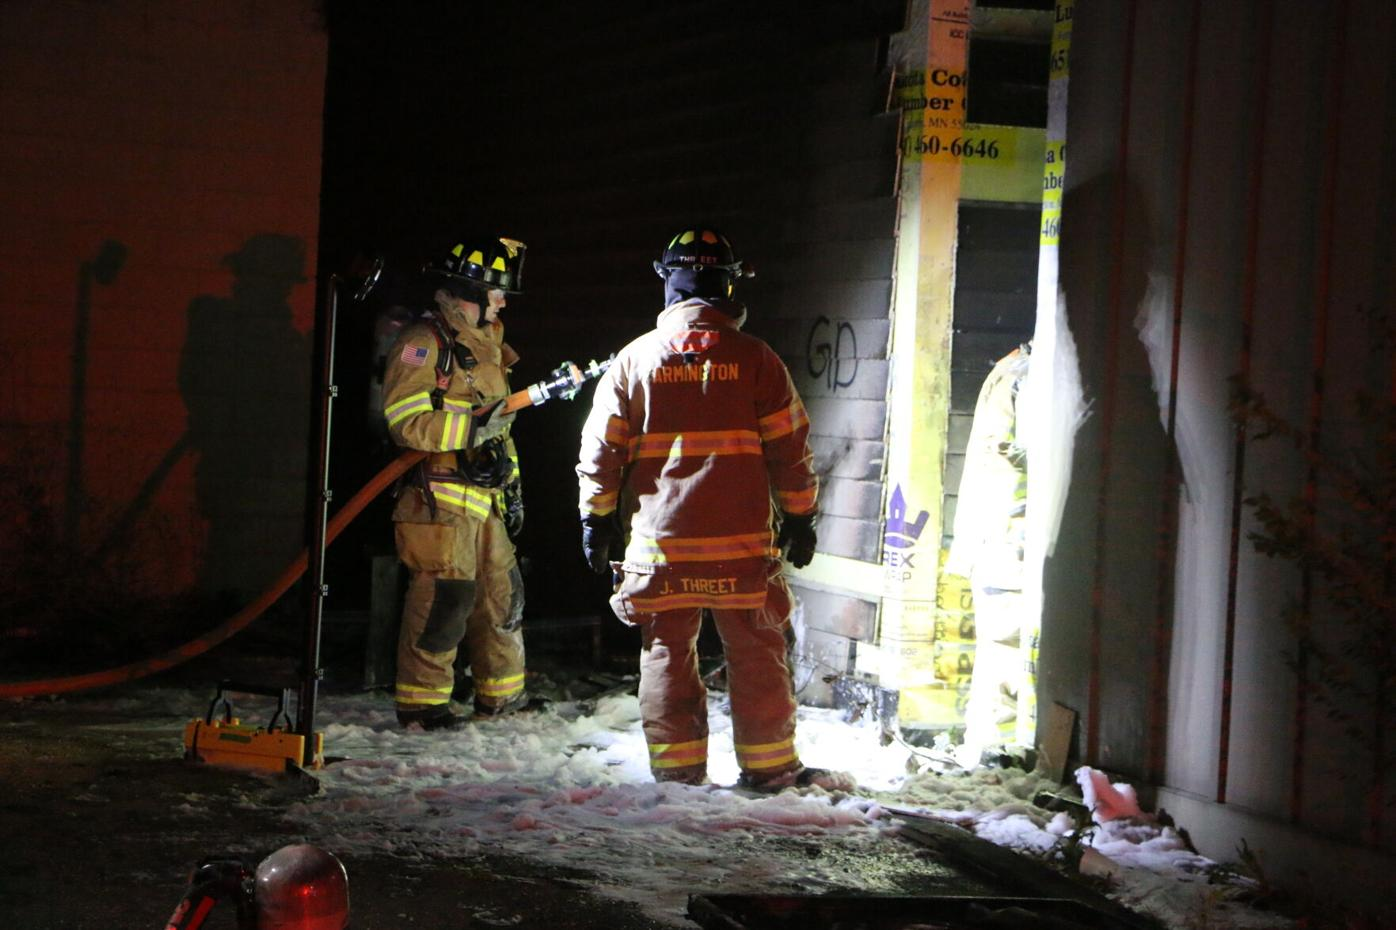 Exterior fire origin between two buildings owned by Farmington Pizza Man